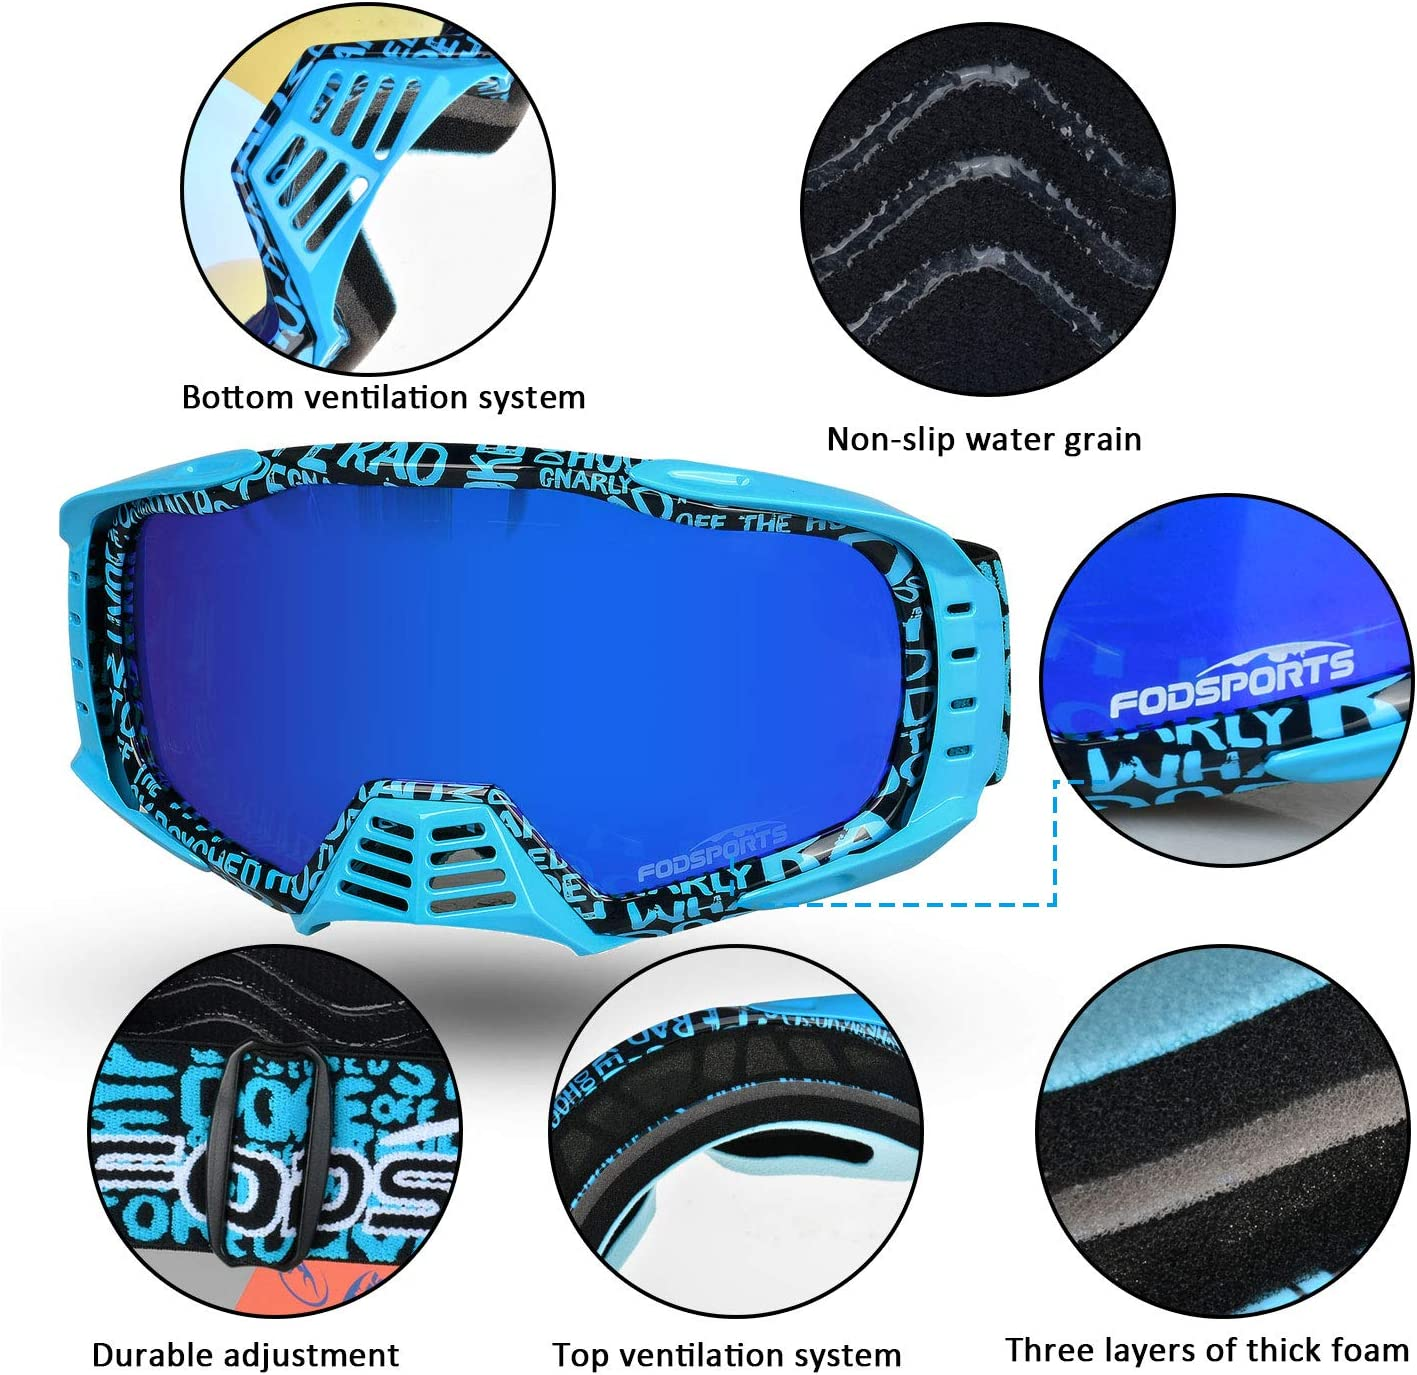 Red Fodsports Professional Motocross Goggles Anti-fog Dirt Bike ATV Goggles Anti-UV Adjustable Motorcycle Gafas for Skiing Cycling Riding